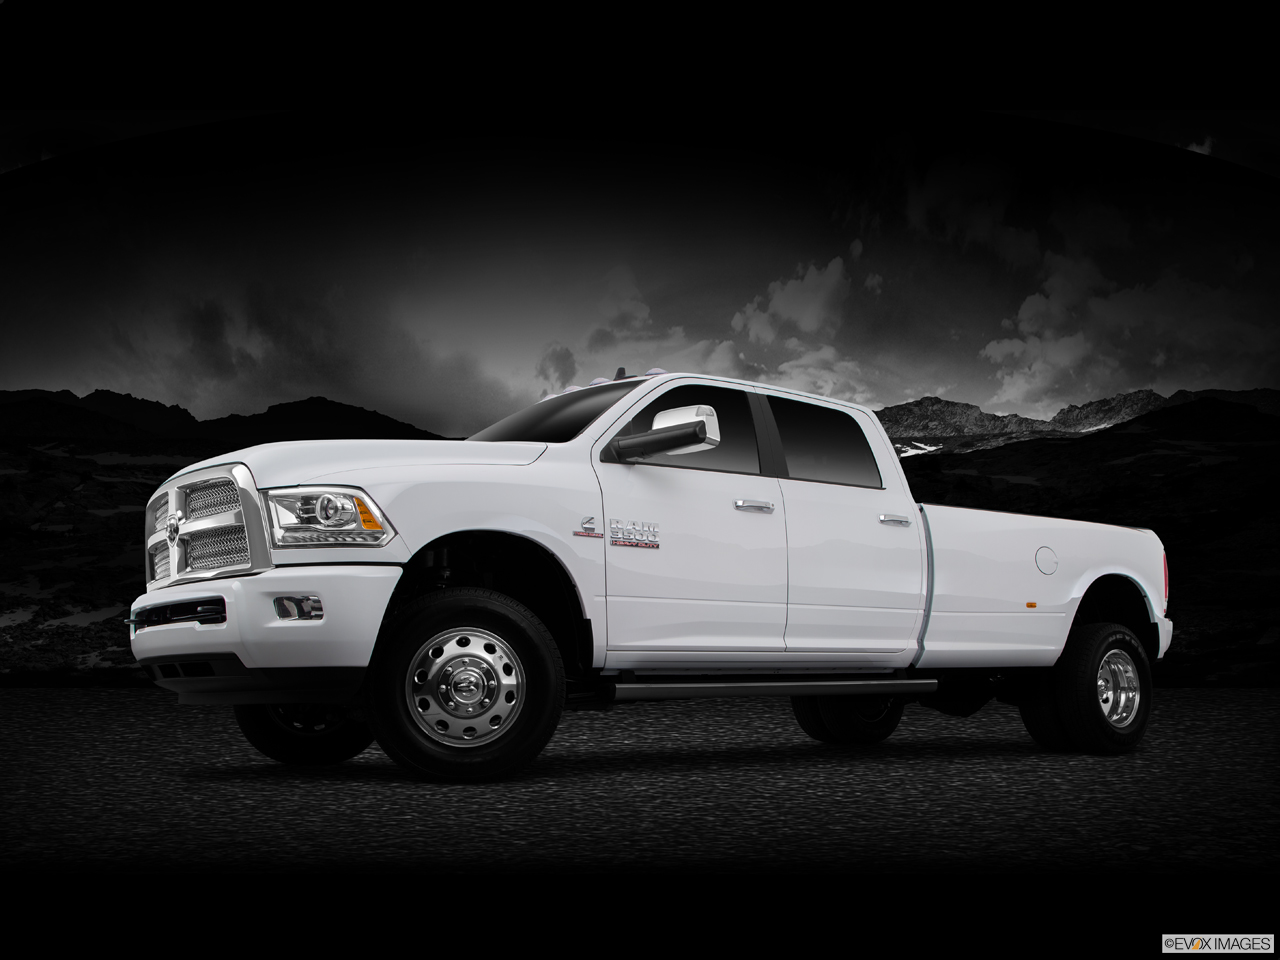 test drive a 2015 ram 3500 at huntington beach chrysler dodge jeep ram. Cars Review. Best American Auto & Cars Review